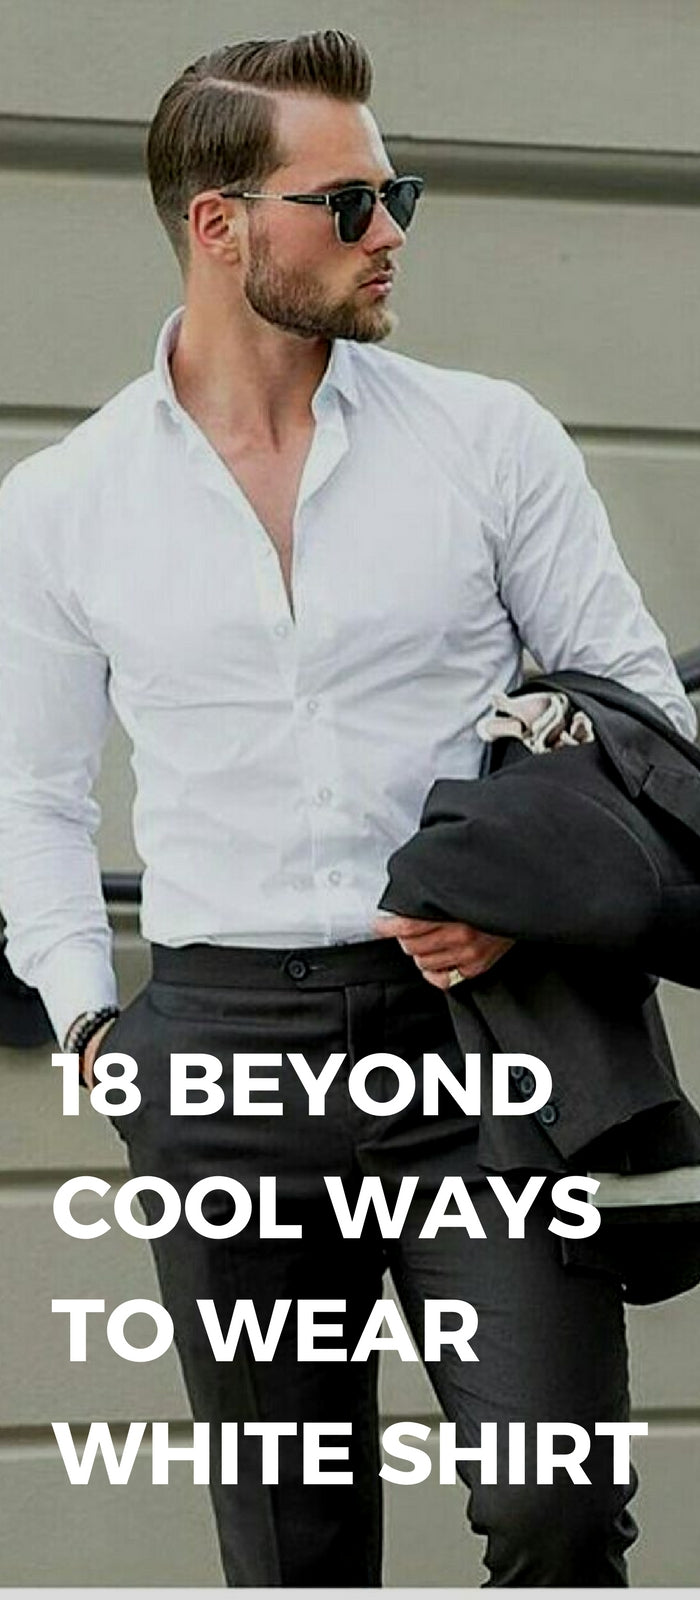 18 Beyond Cool Ways To Wear White Shirt